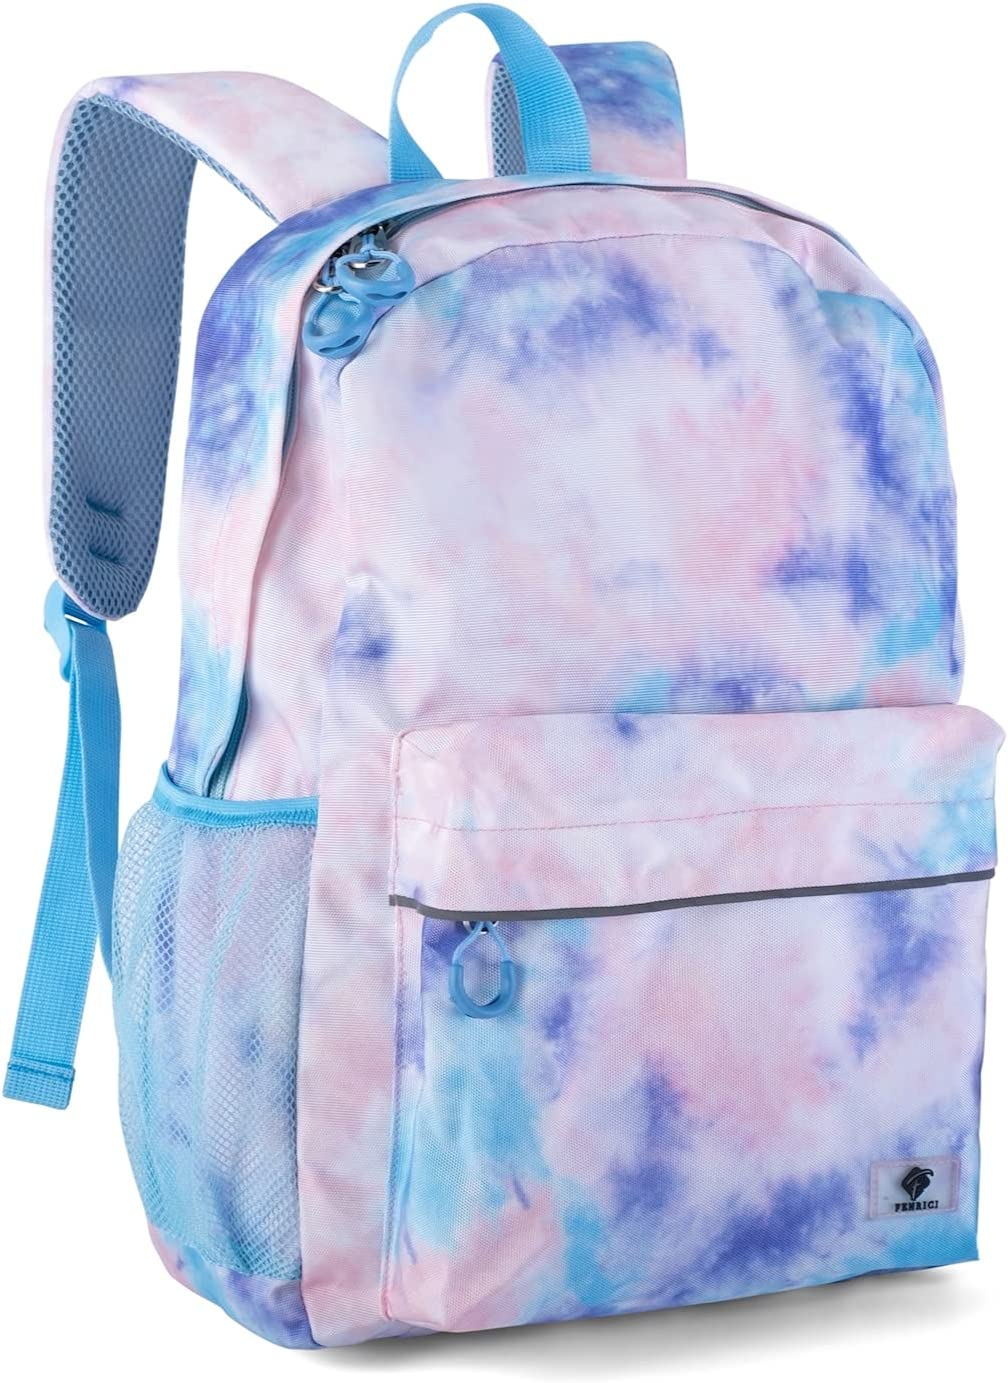 Kids Backpack for Girls, Boys, Teens by Fenrici, Recycled School Bag with Laptop Compartment, 16 in x 13.5 in (Pink Tie Dye)